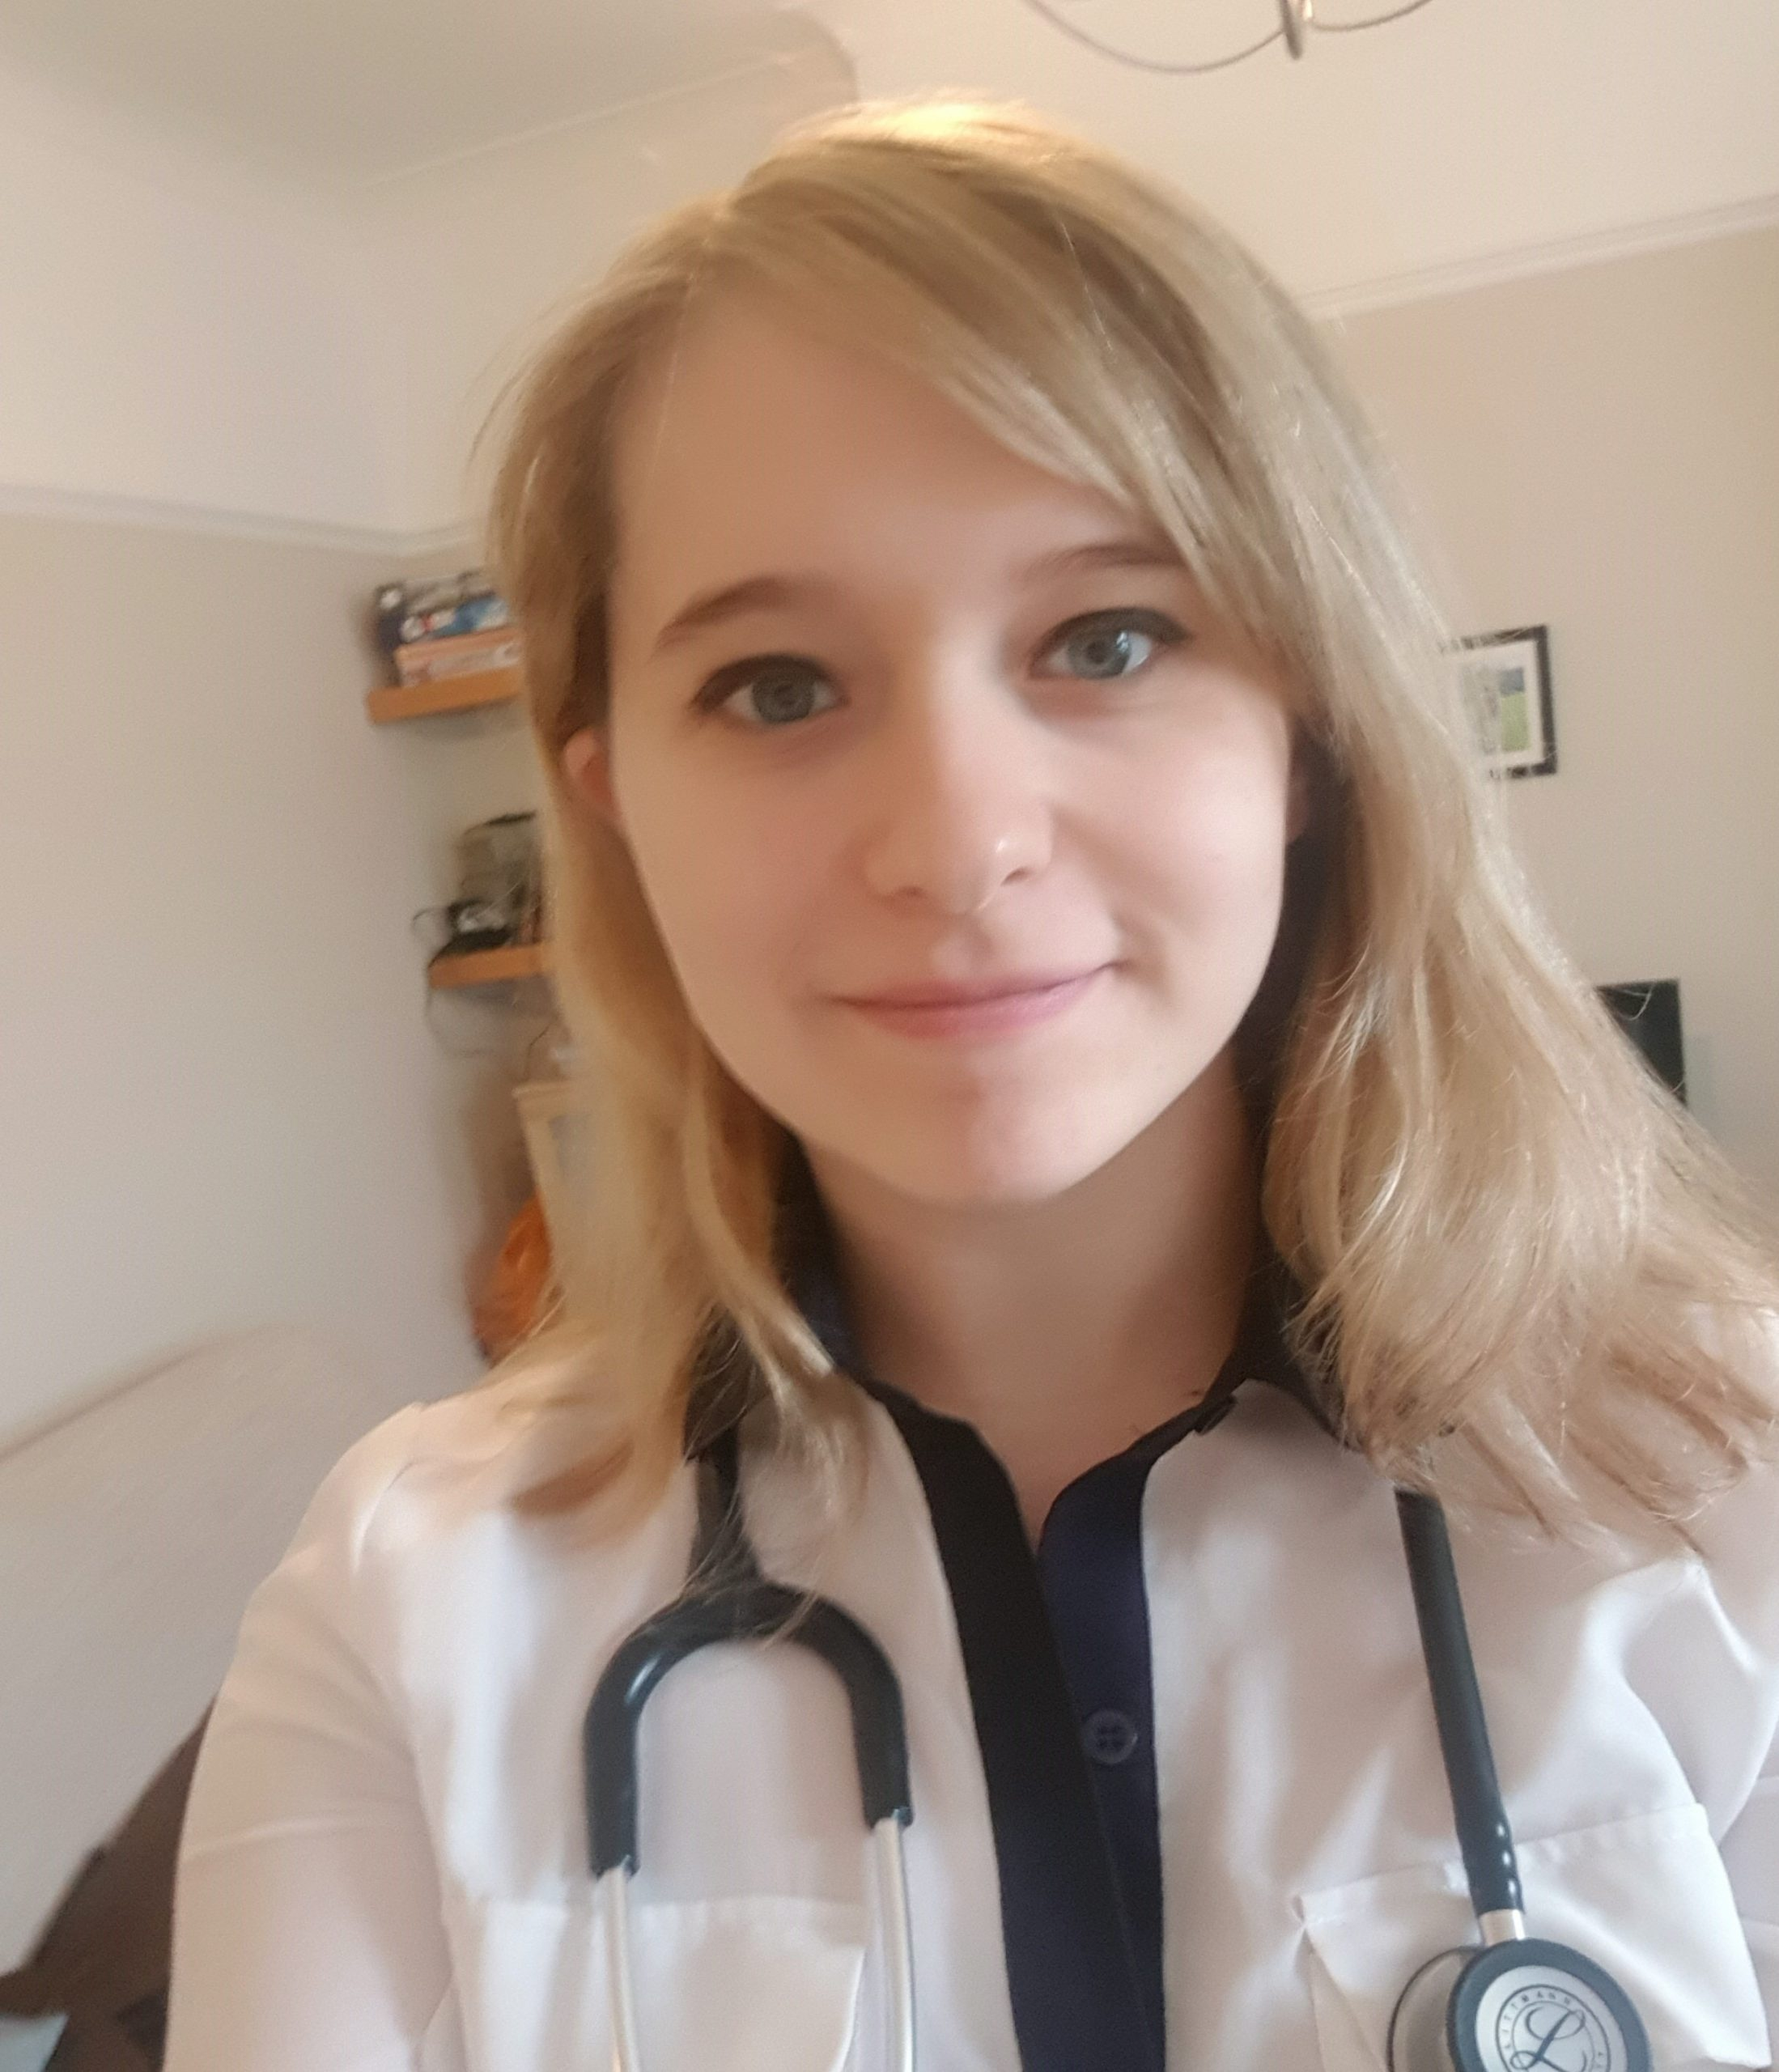 Today's Role Models: Achievement Award winner to Medical Student